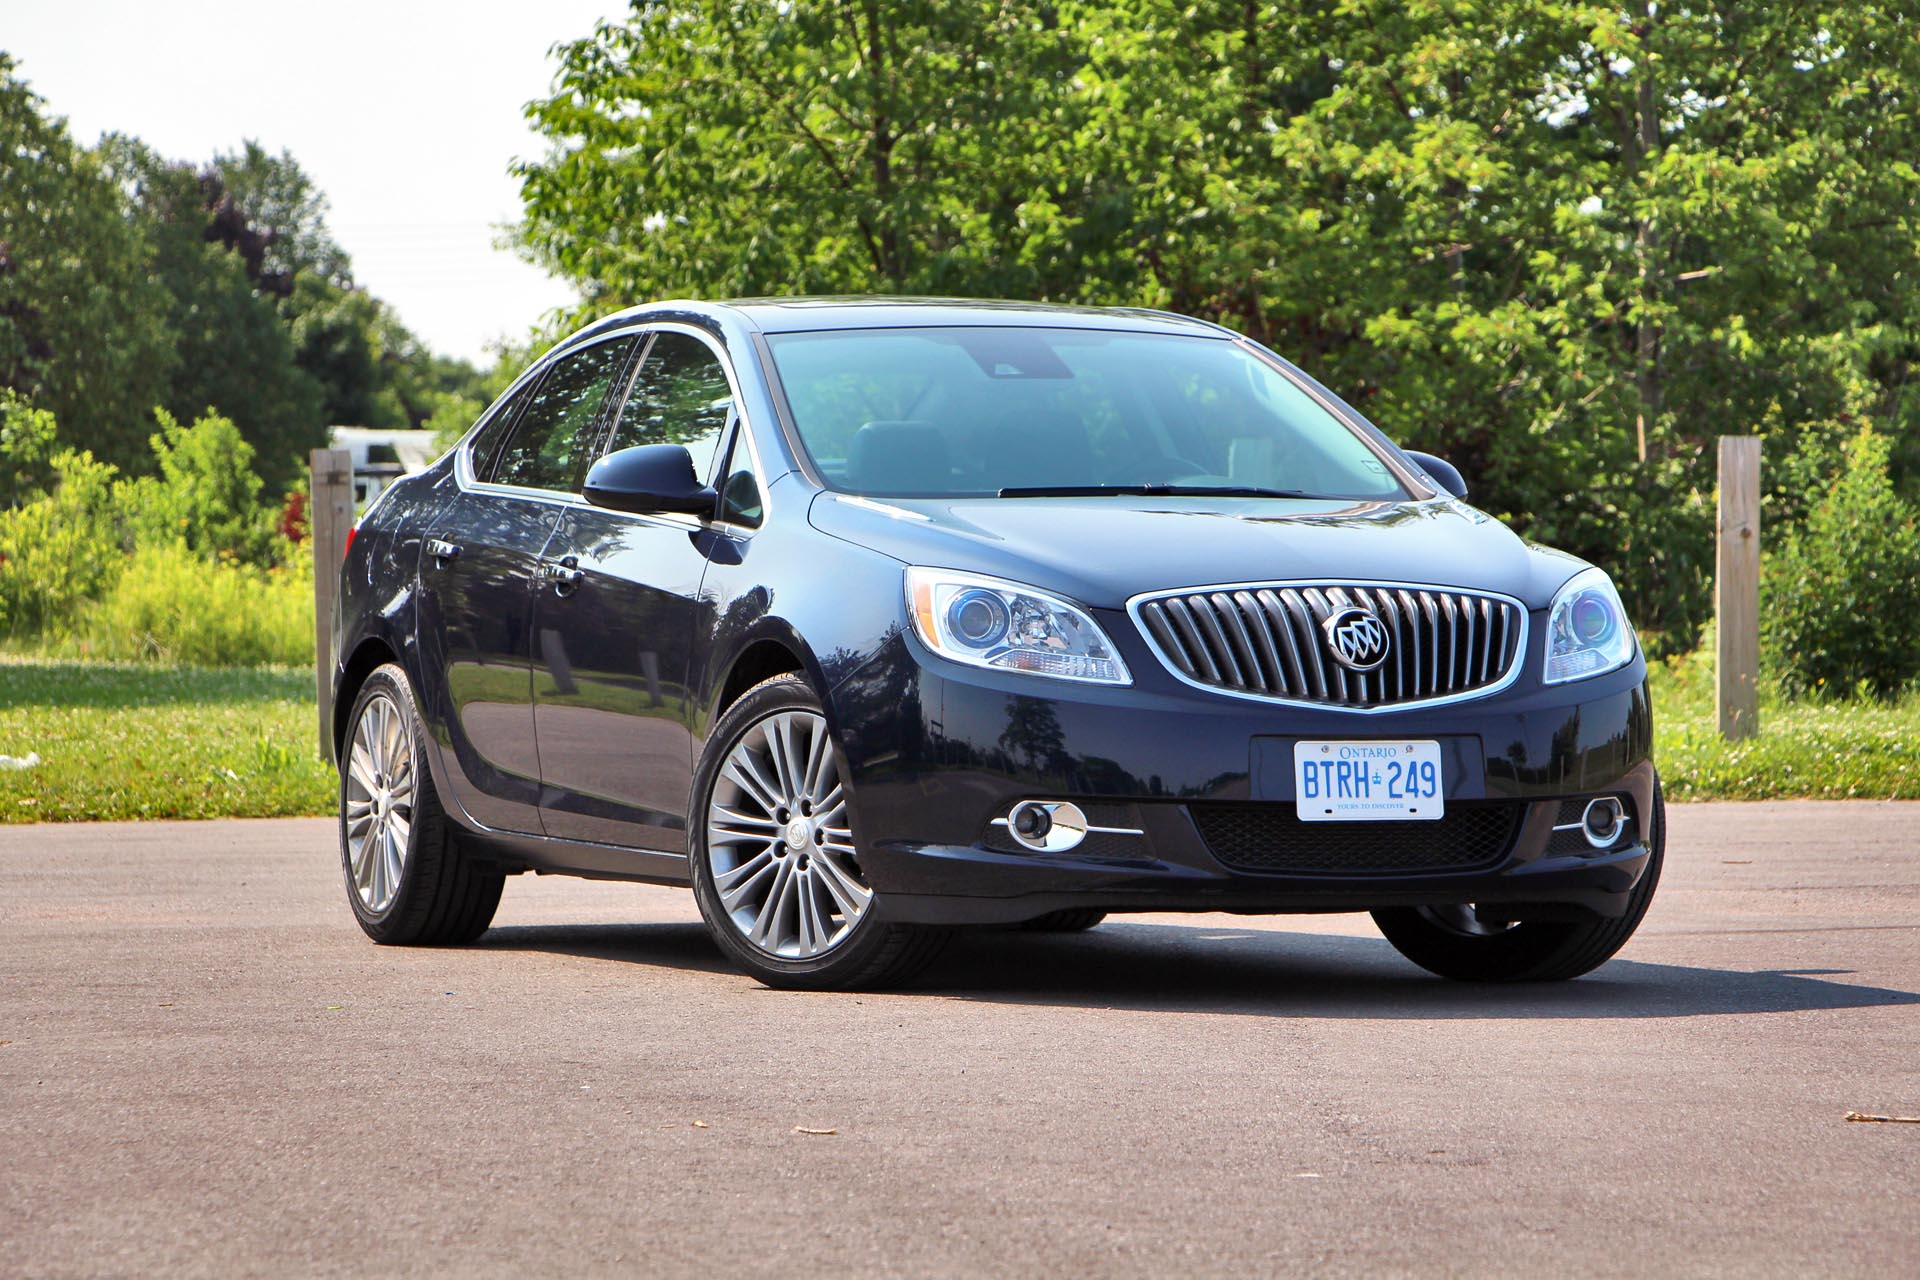 Used Vehicle Review: Buick Verano, 2012-2016 - Autos.ca